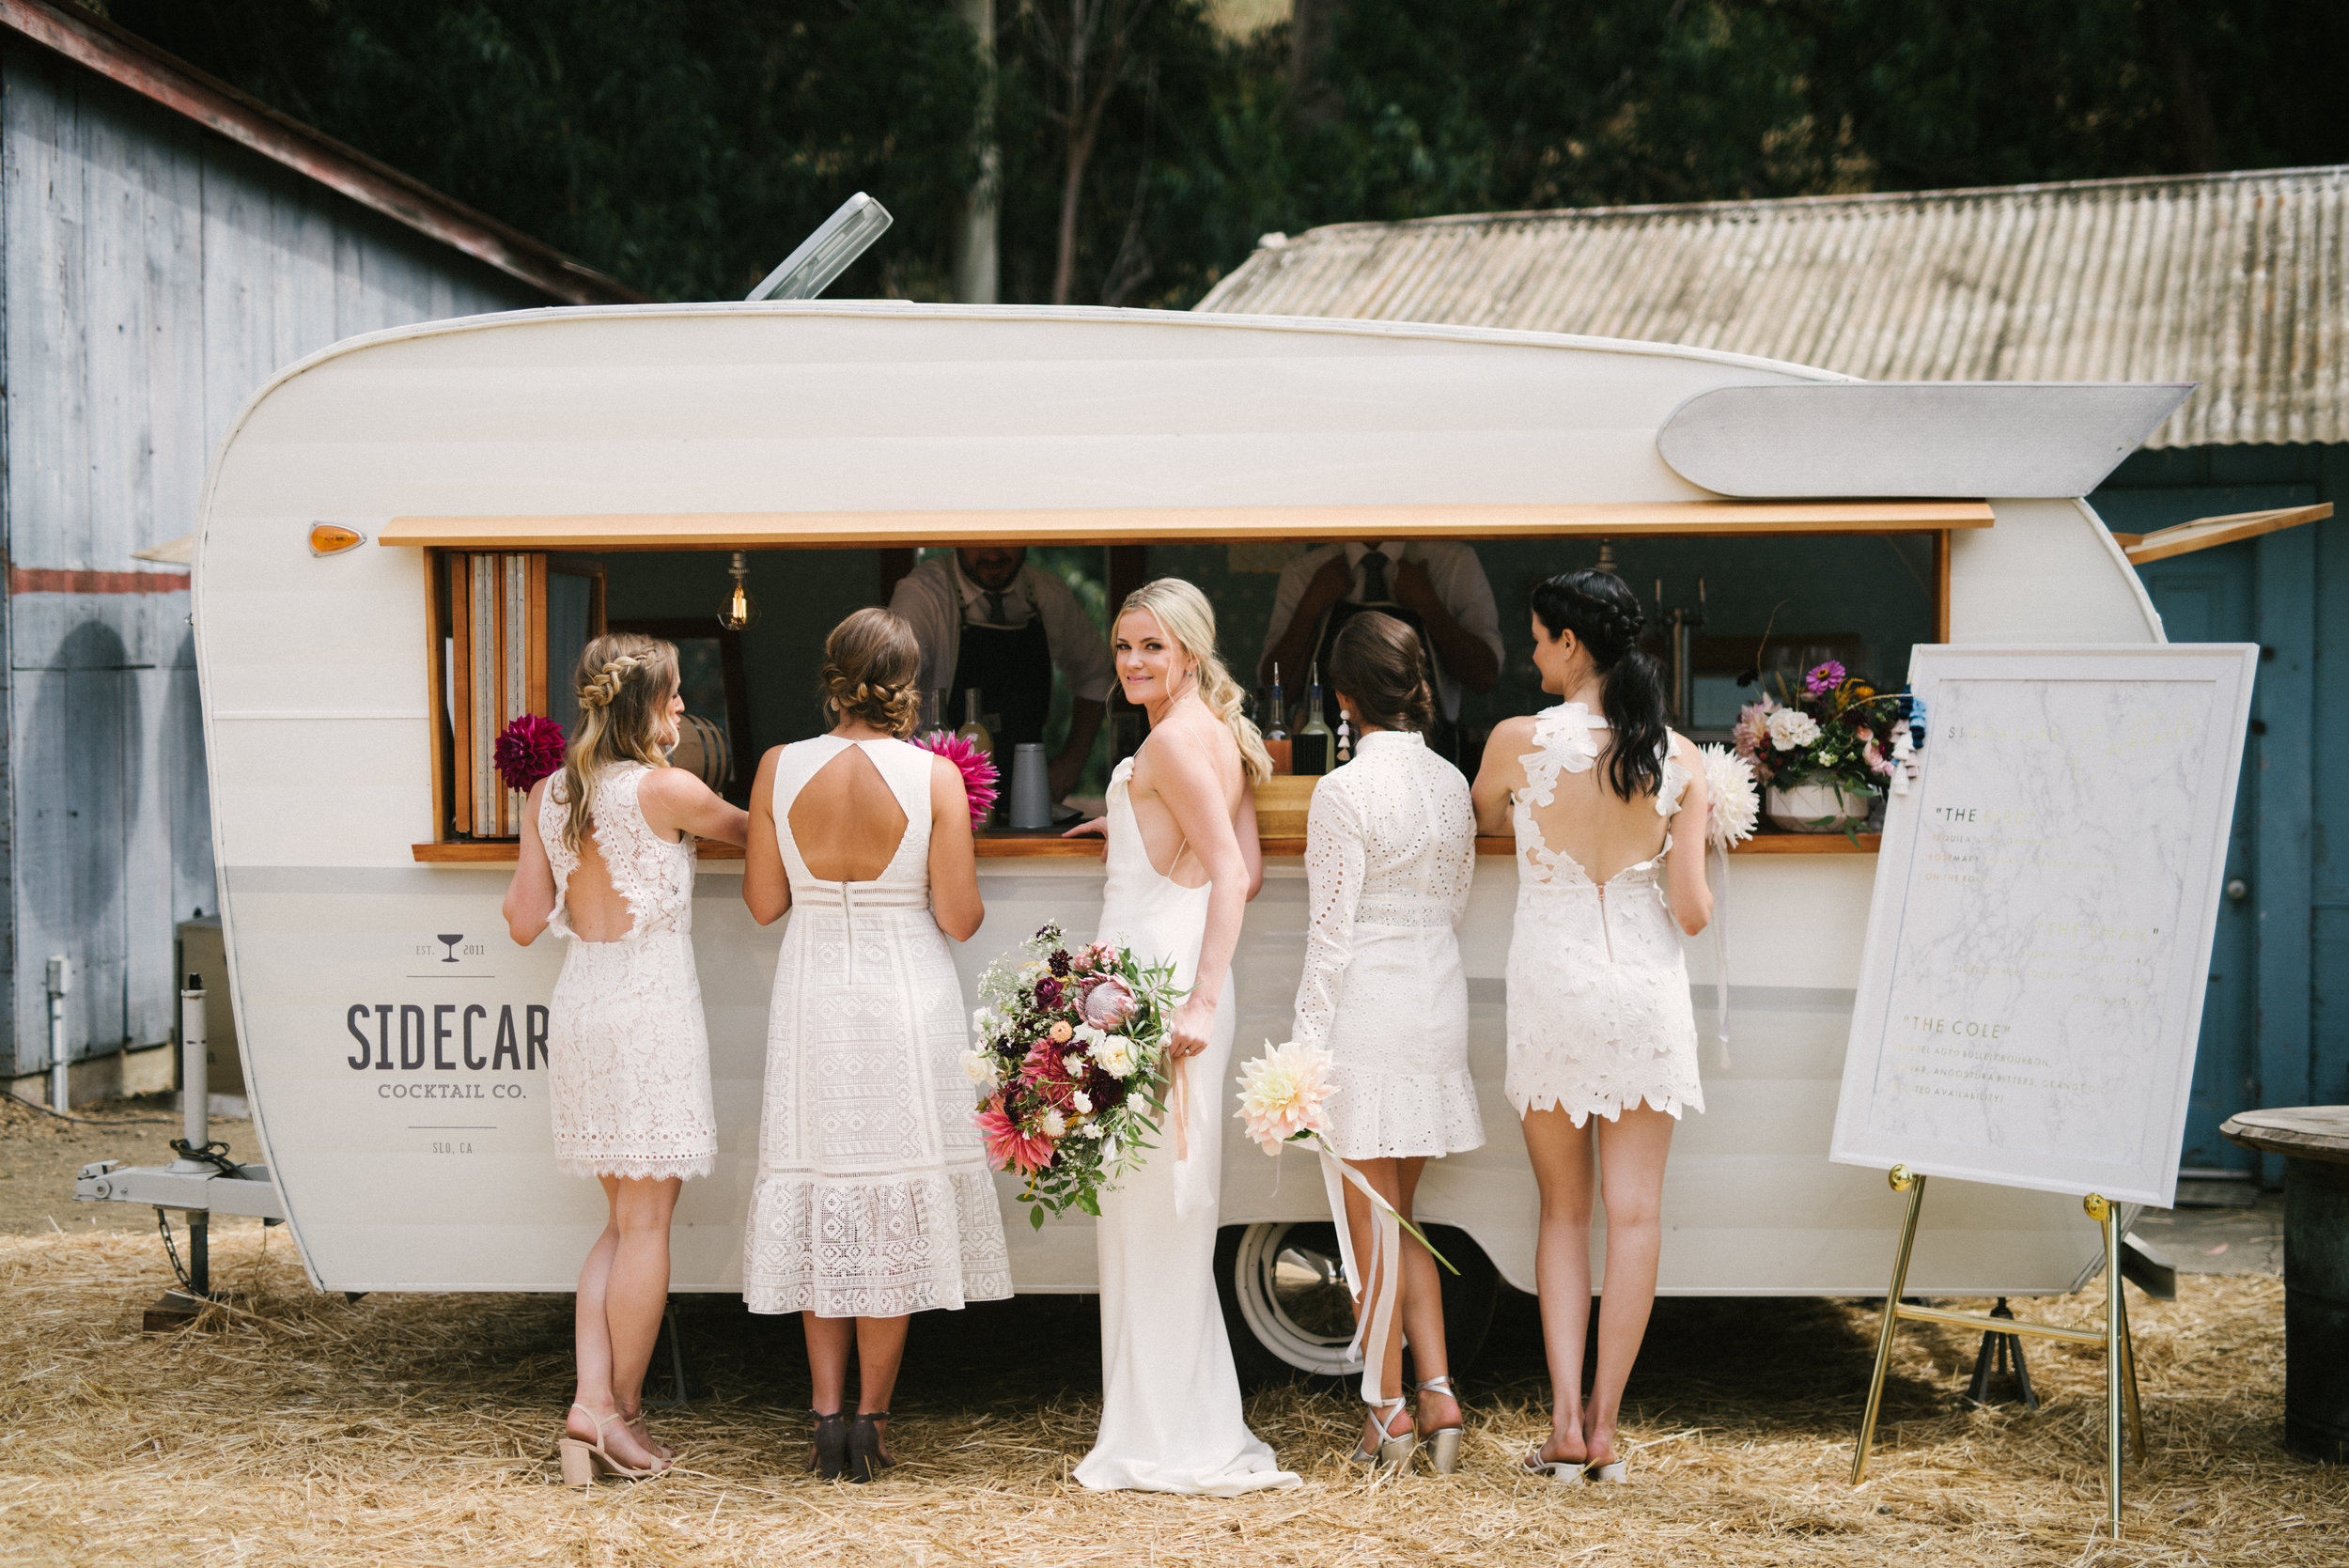 The cutest shot of a bride and her bridesmaids in front of our Sidecar Shasta vintage mobile bar + vending trailer